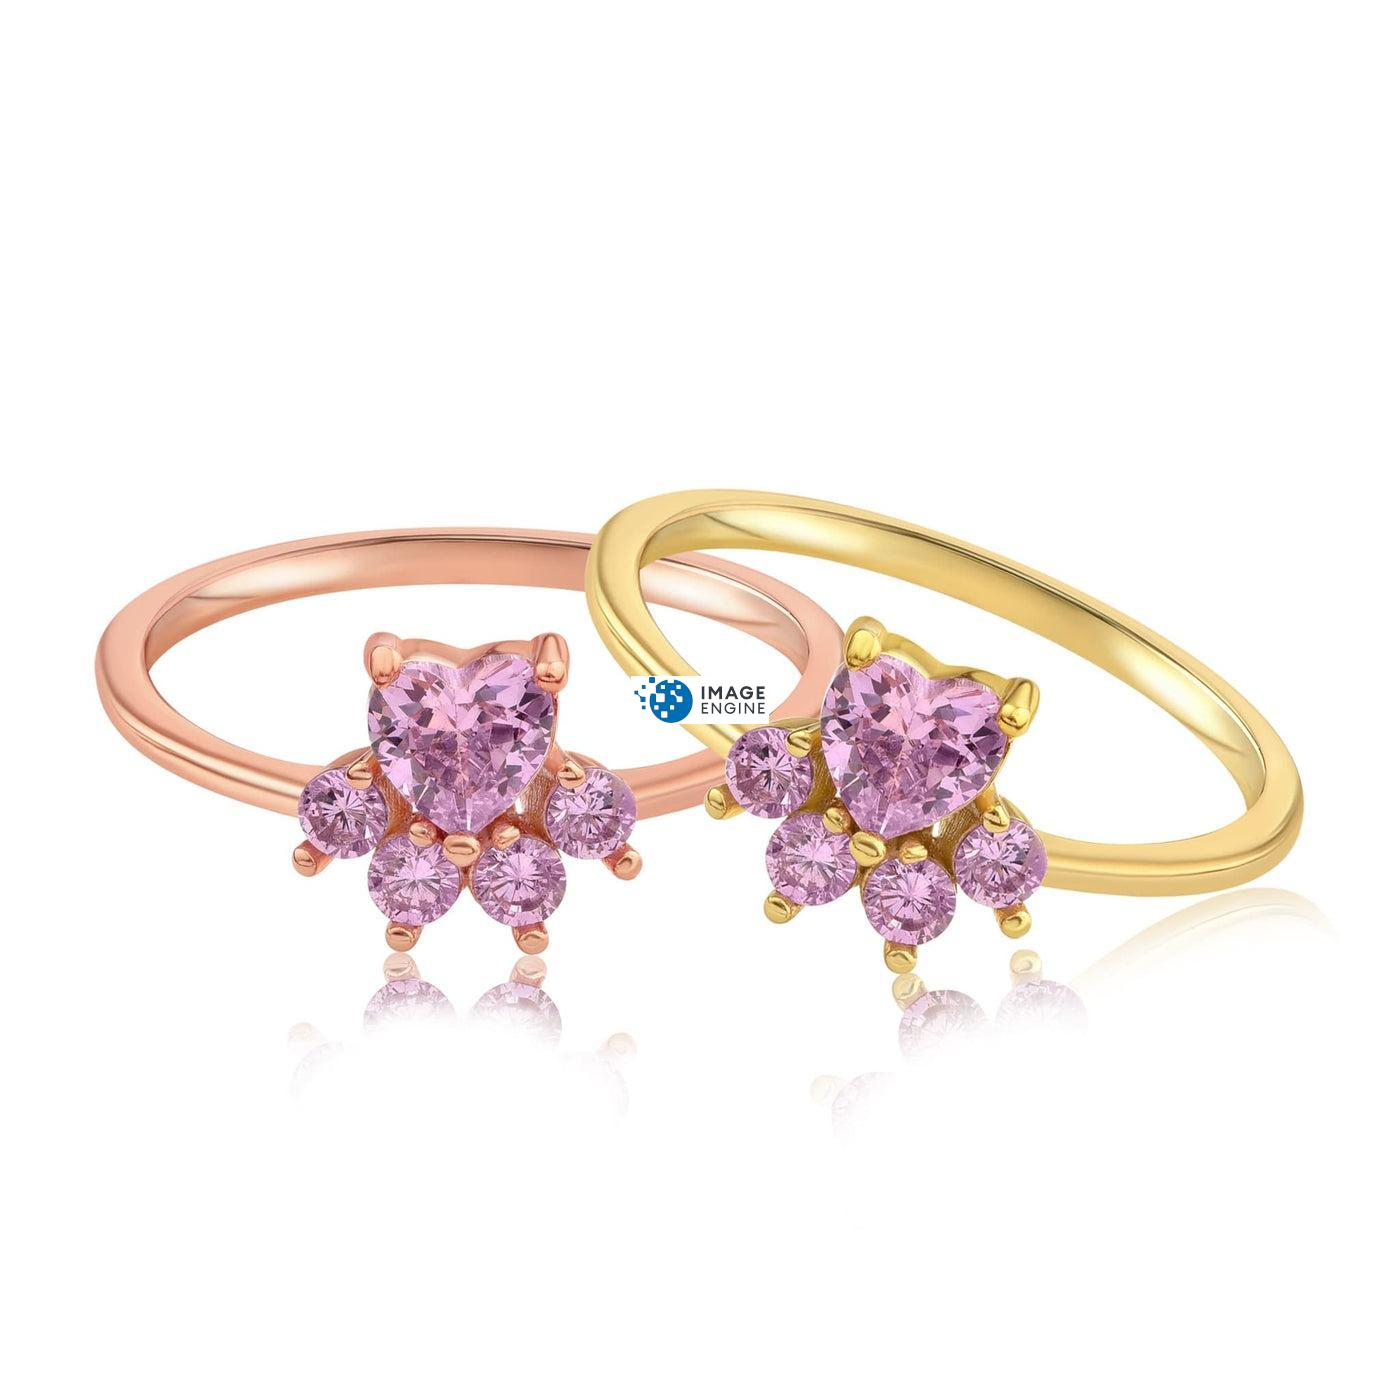 Bella Paw Rose Quartz Ring - Front View SideBy Side - 18K Rose Gold Vermeil and 18K Yellow Gold Vermeil